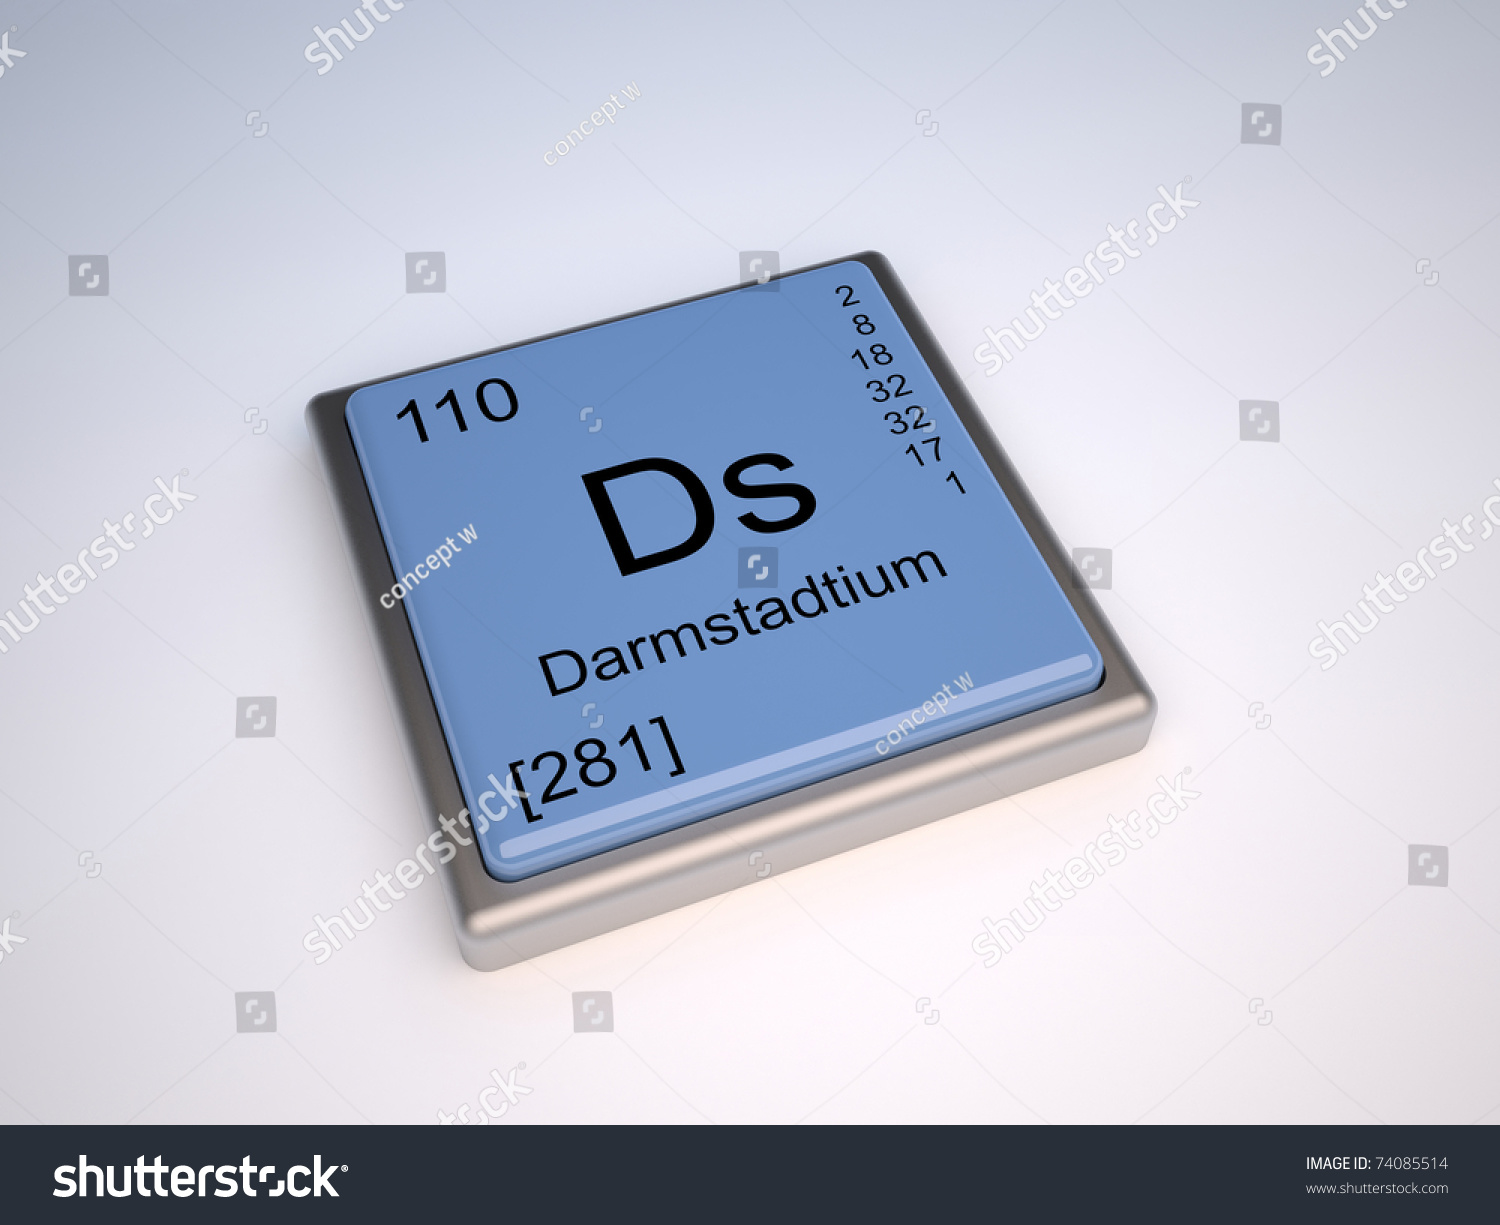 Darmstadtium chemical element periodic table symbol stock darmstadtium chemical element of the periodic table with symbol ds gamestrikefo Choice Image